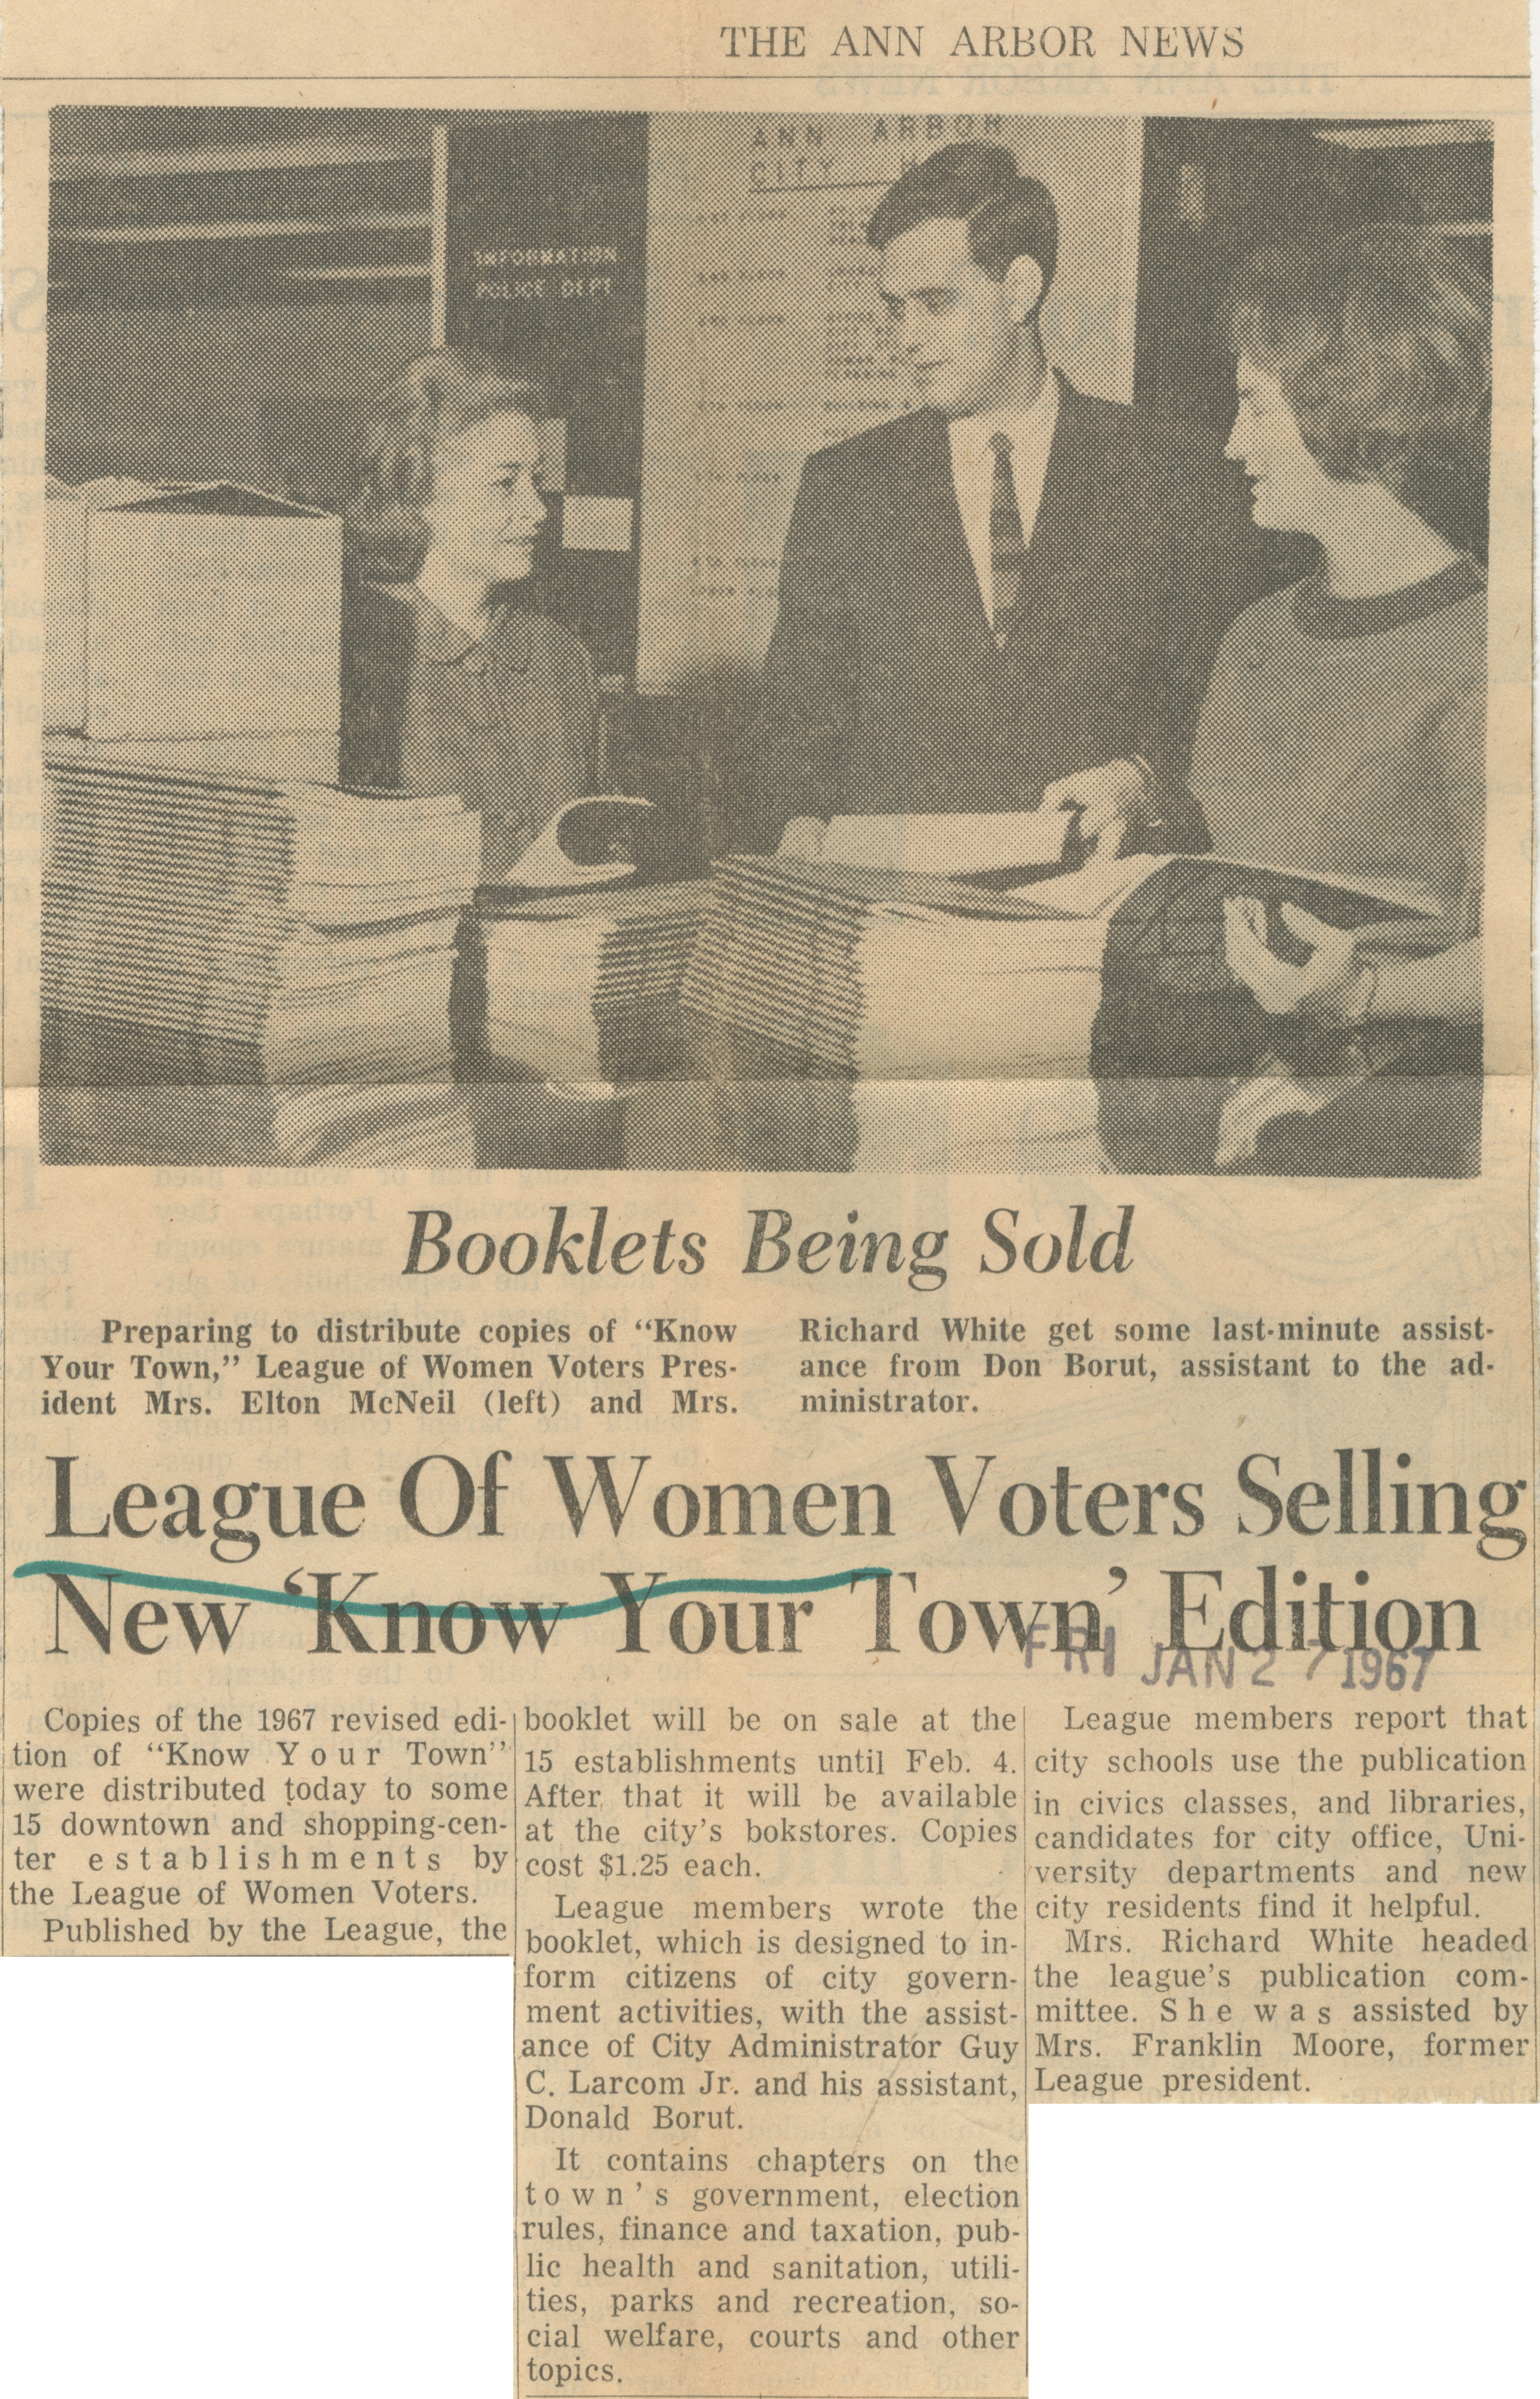 League Of Women Voters Selling New 'Know Your Town' Edition image